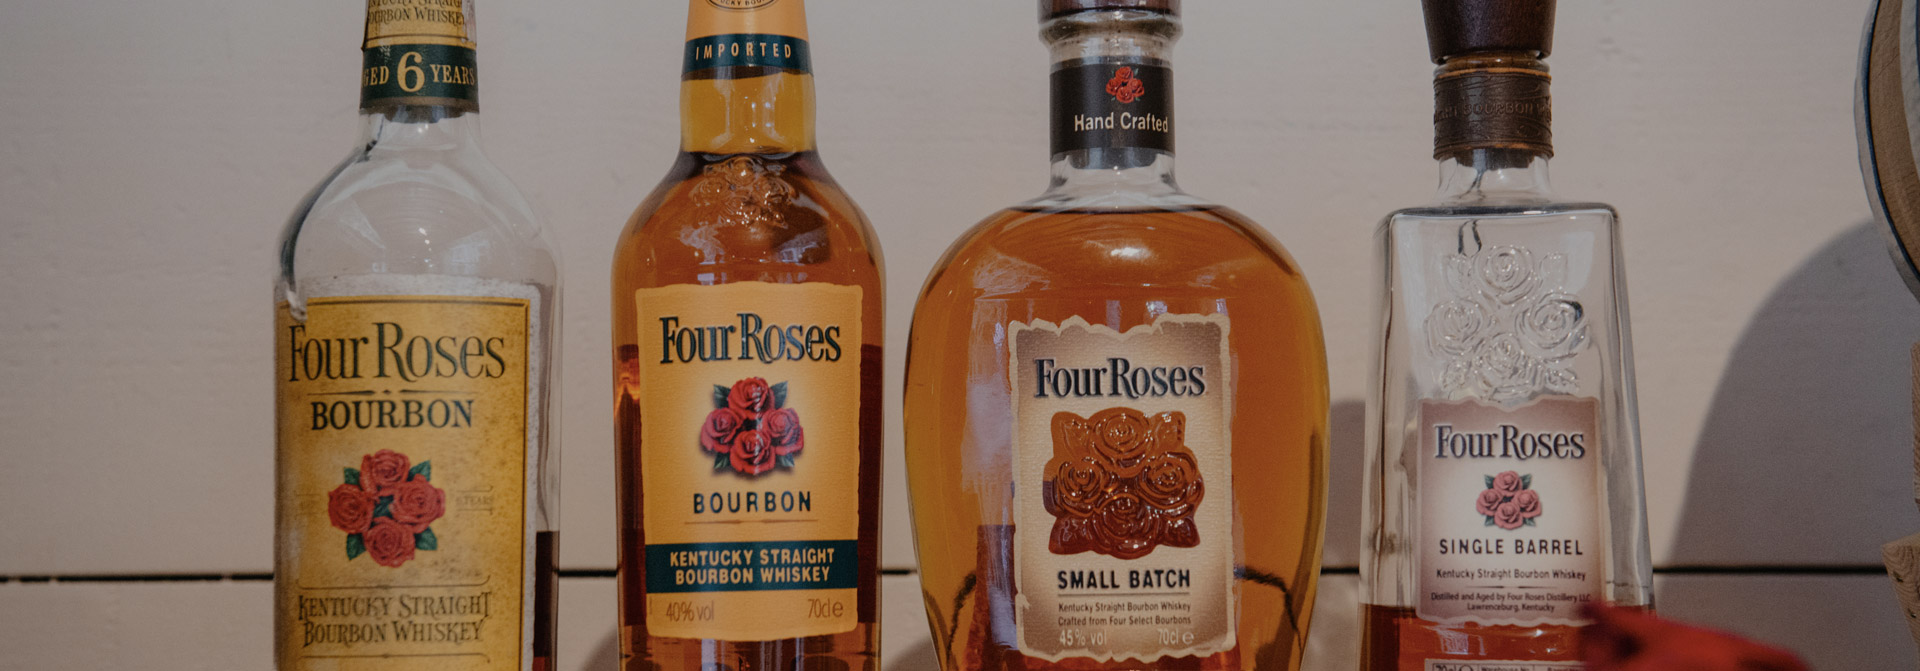 four roses yellow label small batch single barrel whiskey bourbon ουσκι